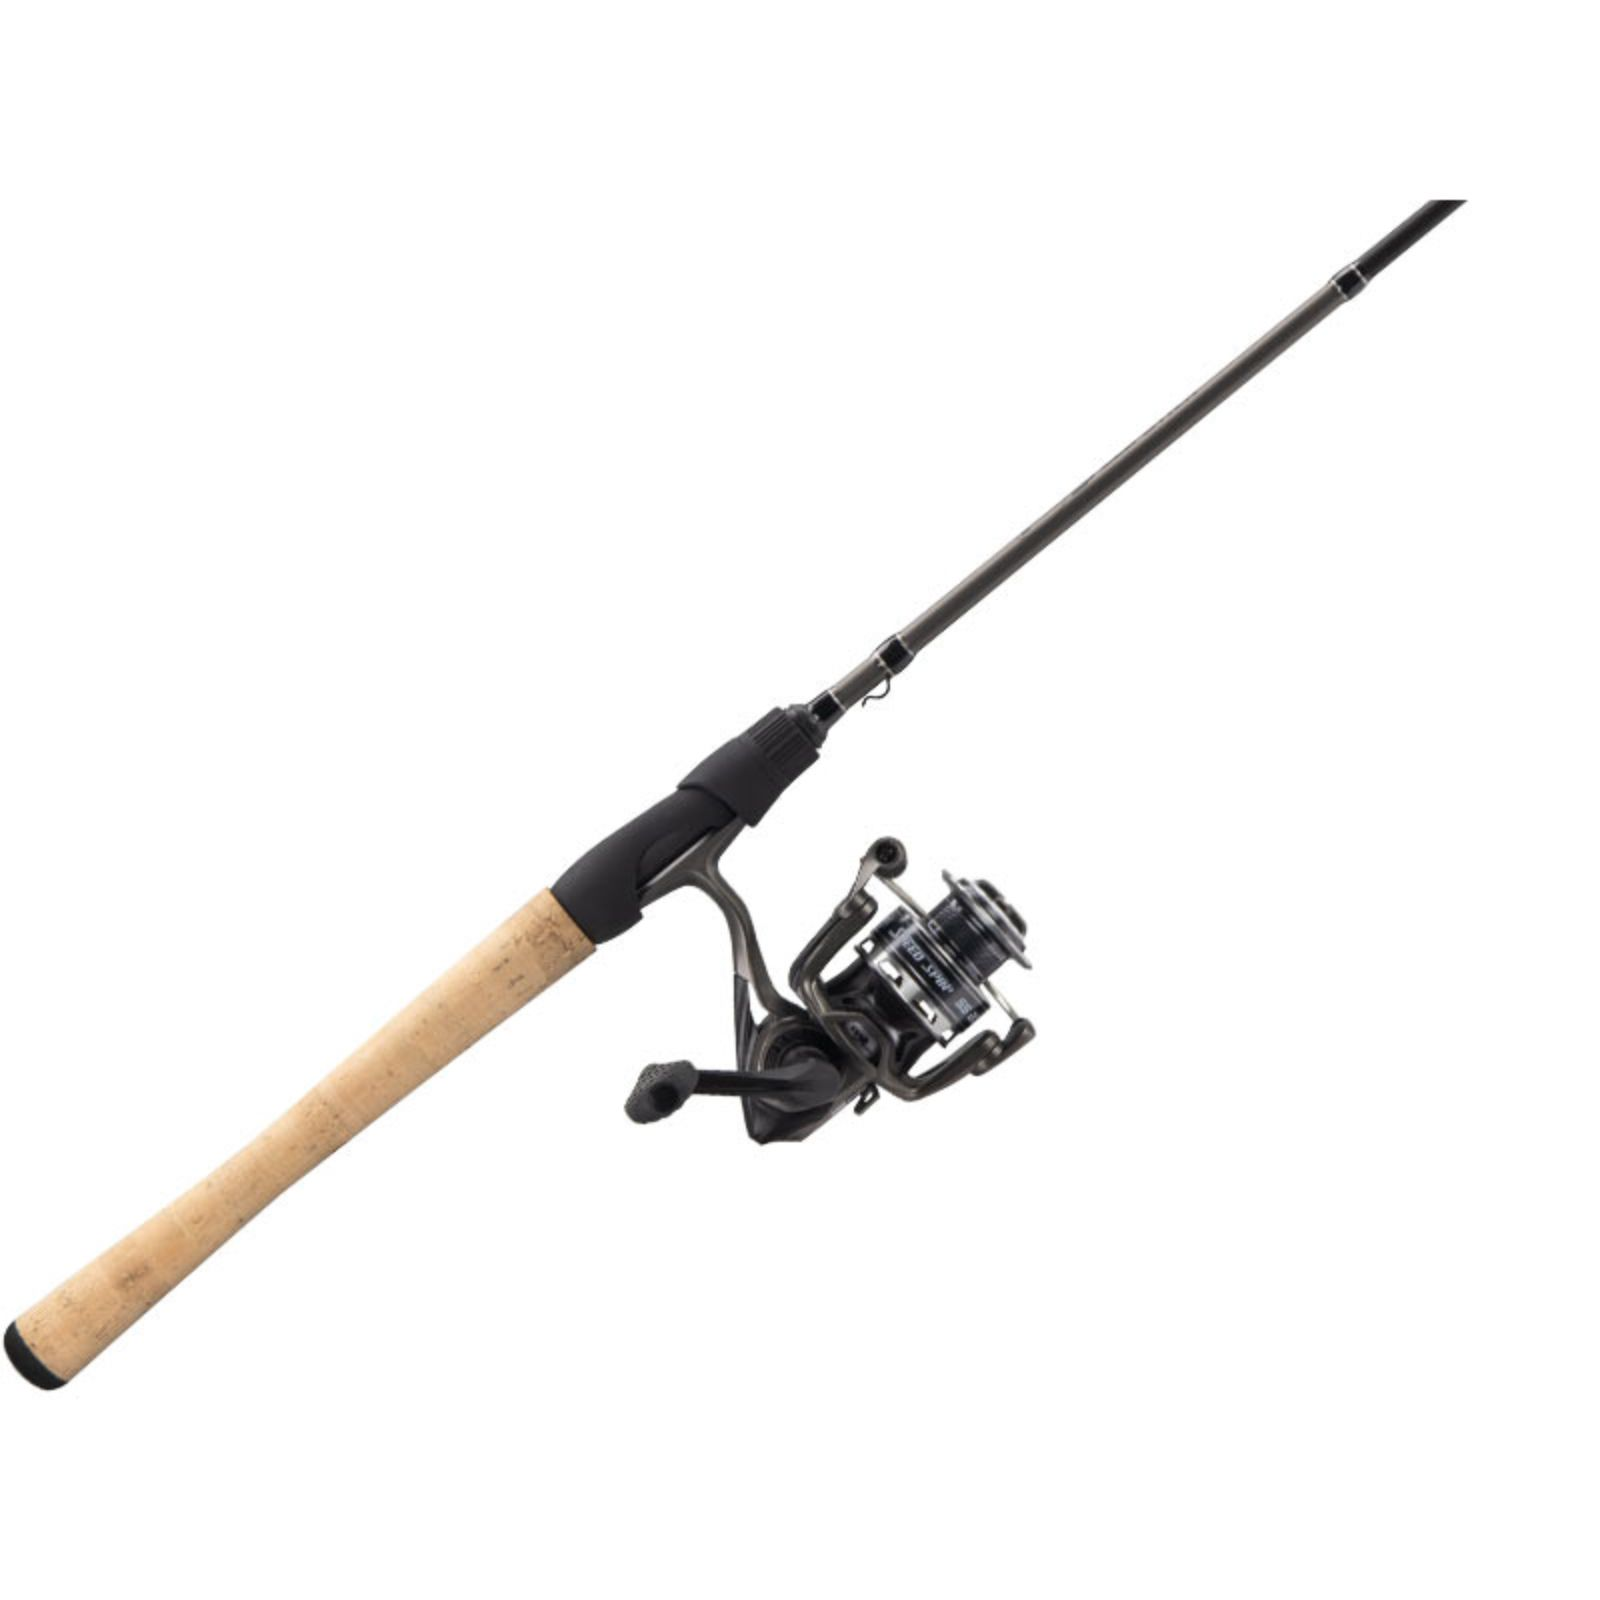 Lews Speed Spin Classic HM30 Combo 6.5ft